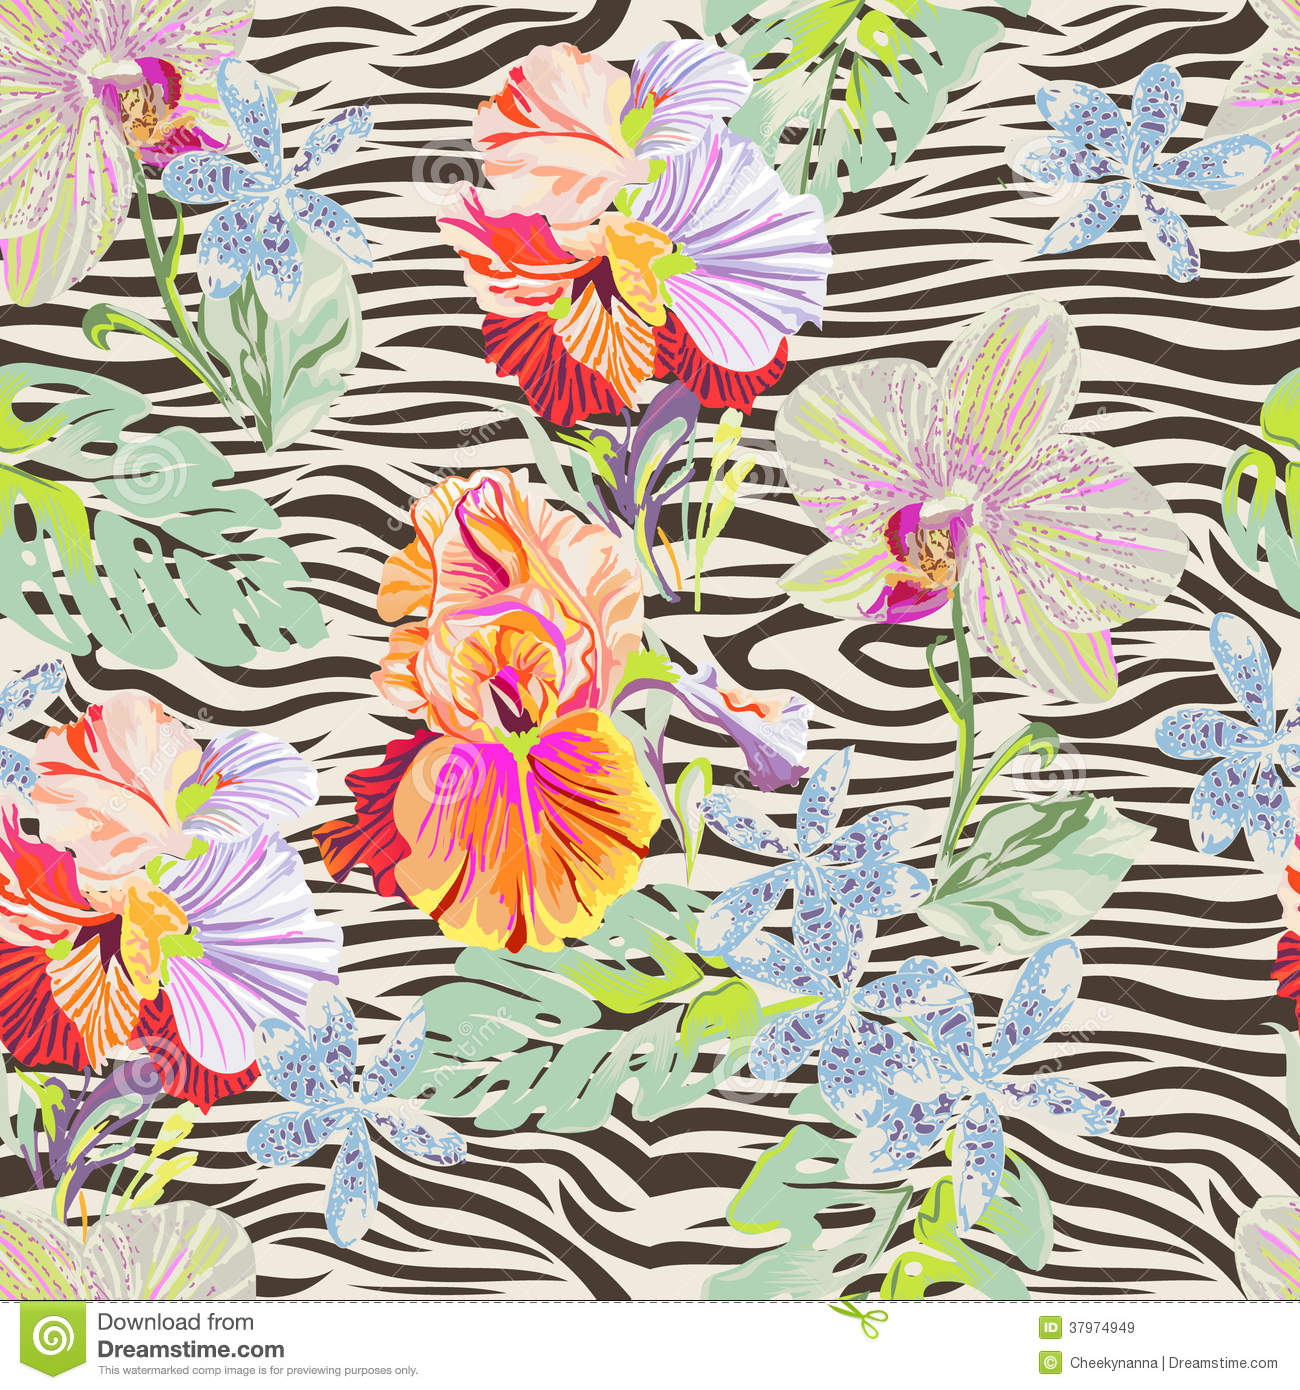 Tropical flowers pictures free vector Tropical Flowers On Zebra Royalty Free Stock Images - Image: 37974949 vector